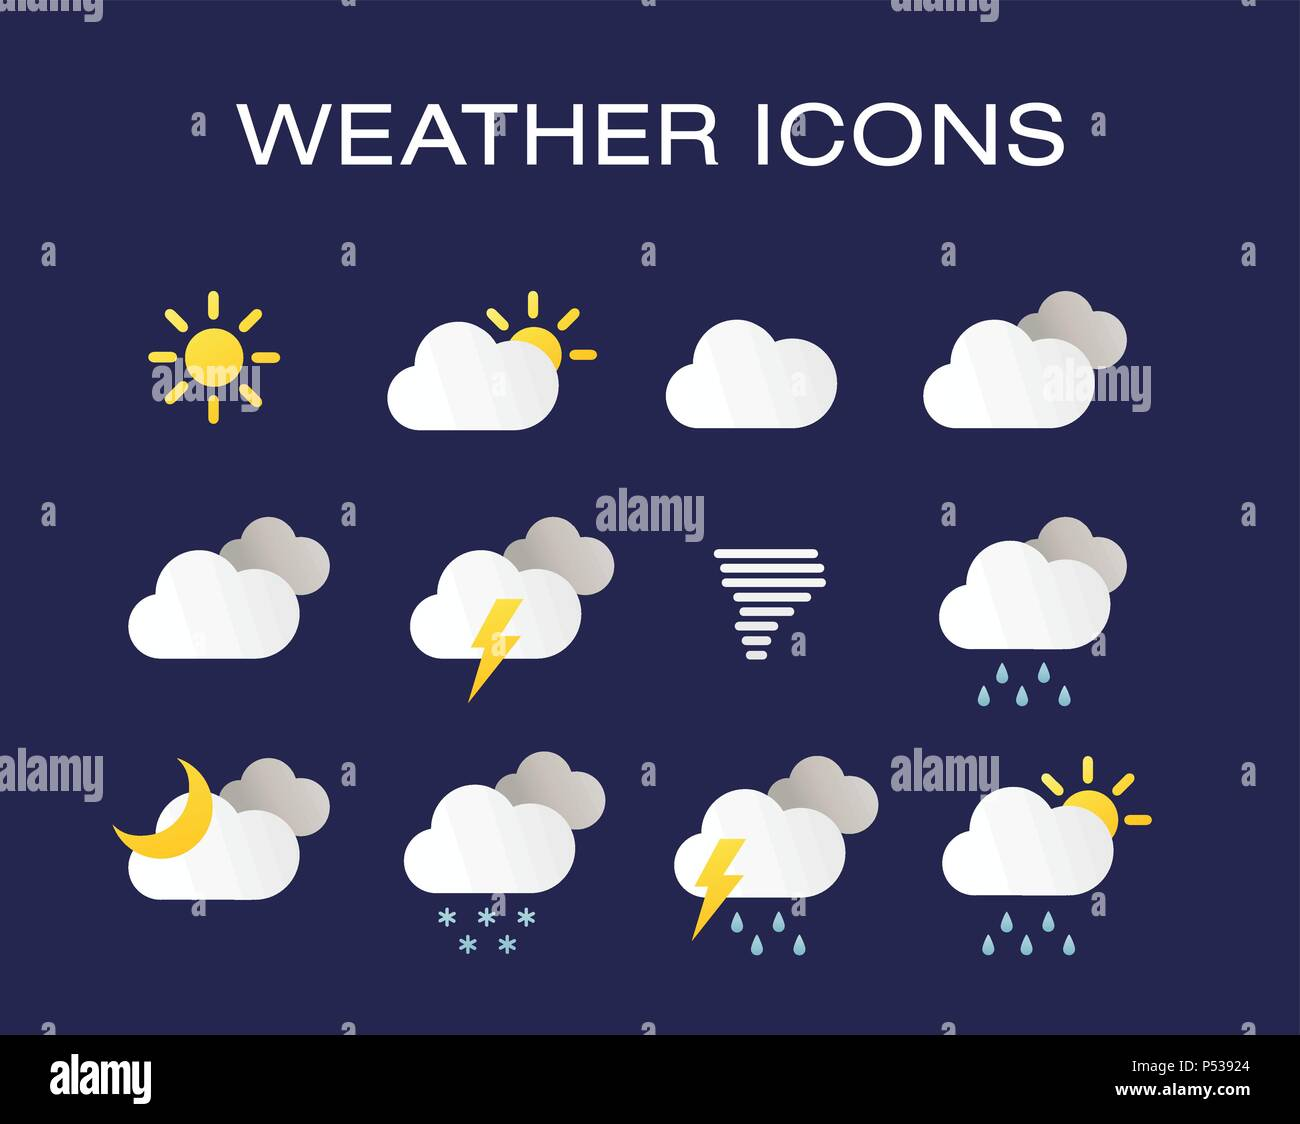 Complete set of modern realistic weather icons. Modern weather icons set. Flat vector symbols on dark background. - Stock Vector